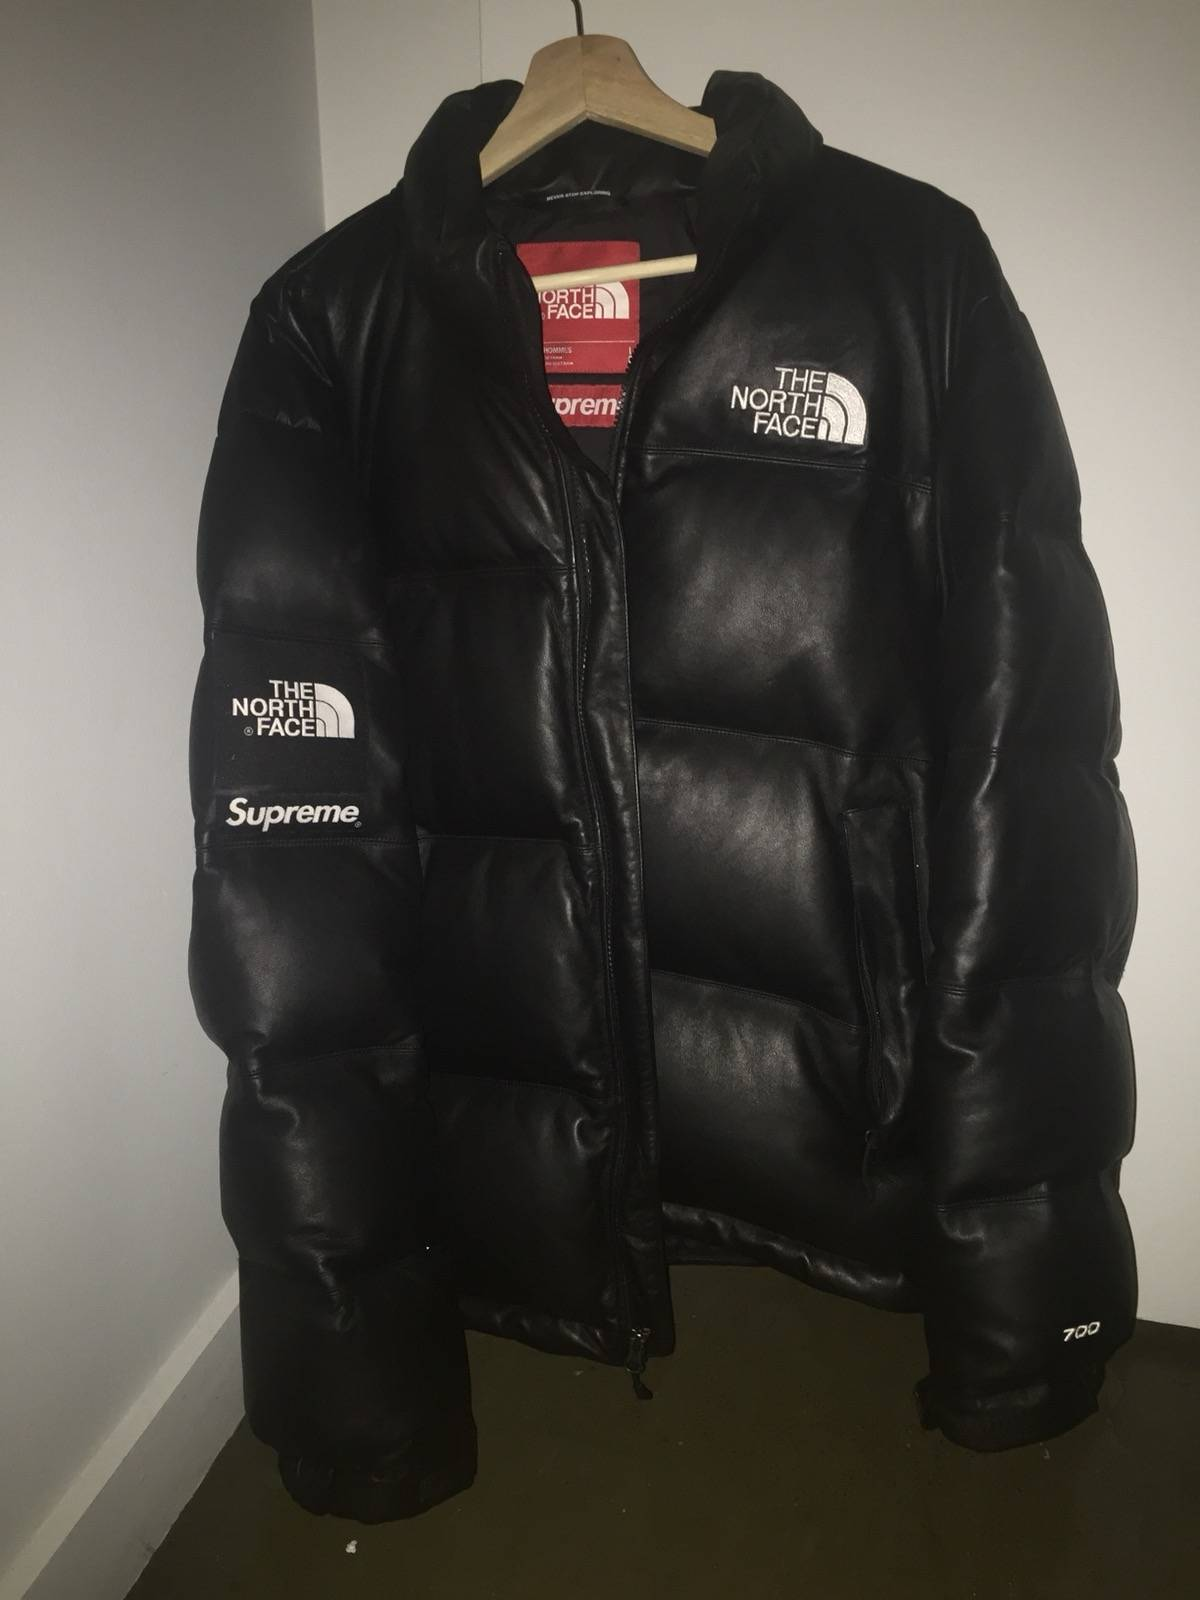 Supreme Supreme x The North Face Leather Nuptse Jacket Black Size l - Leather  Jackets for Sale - Grailed 7a59f3030